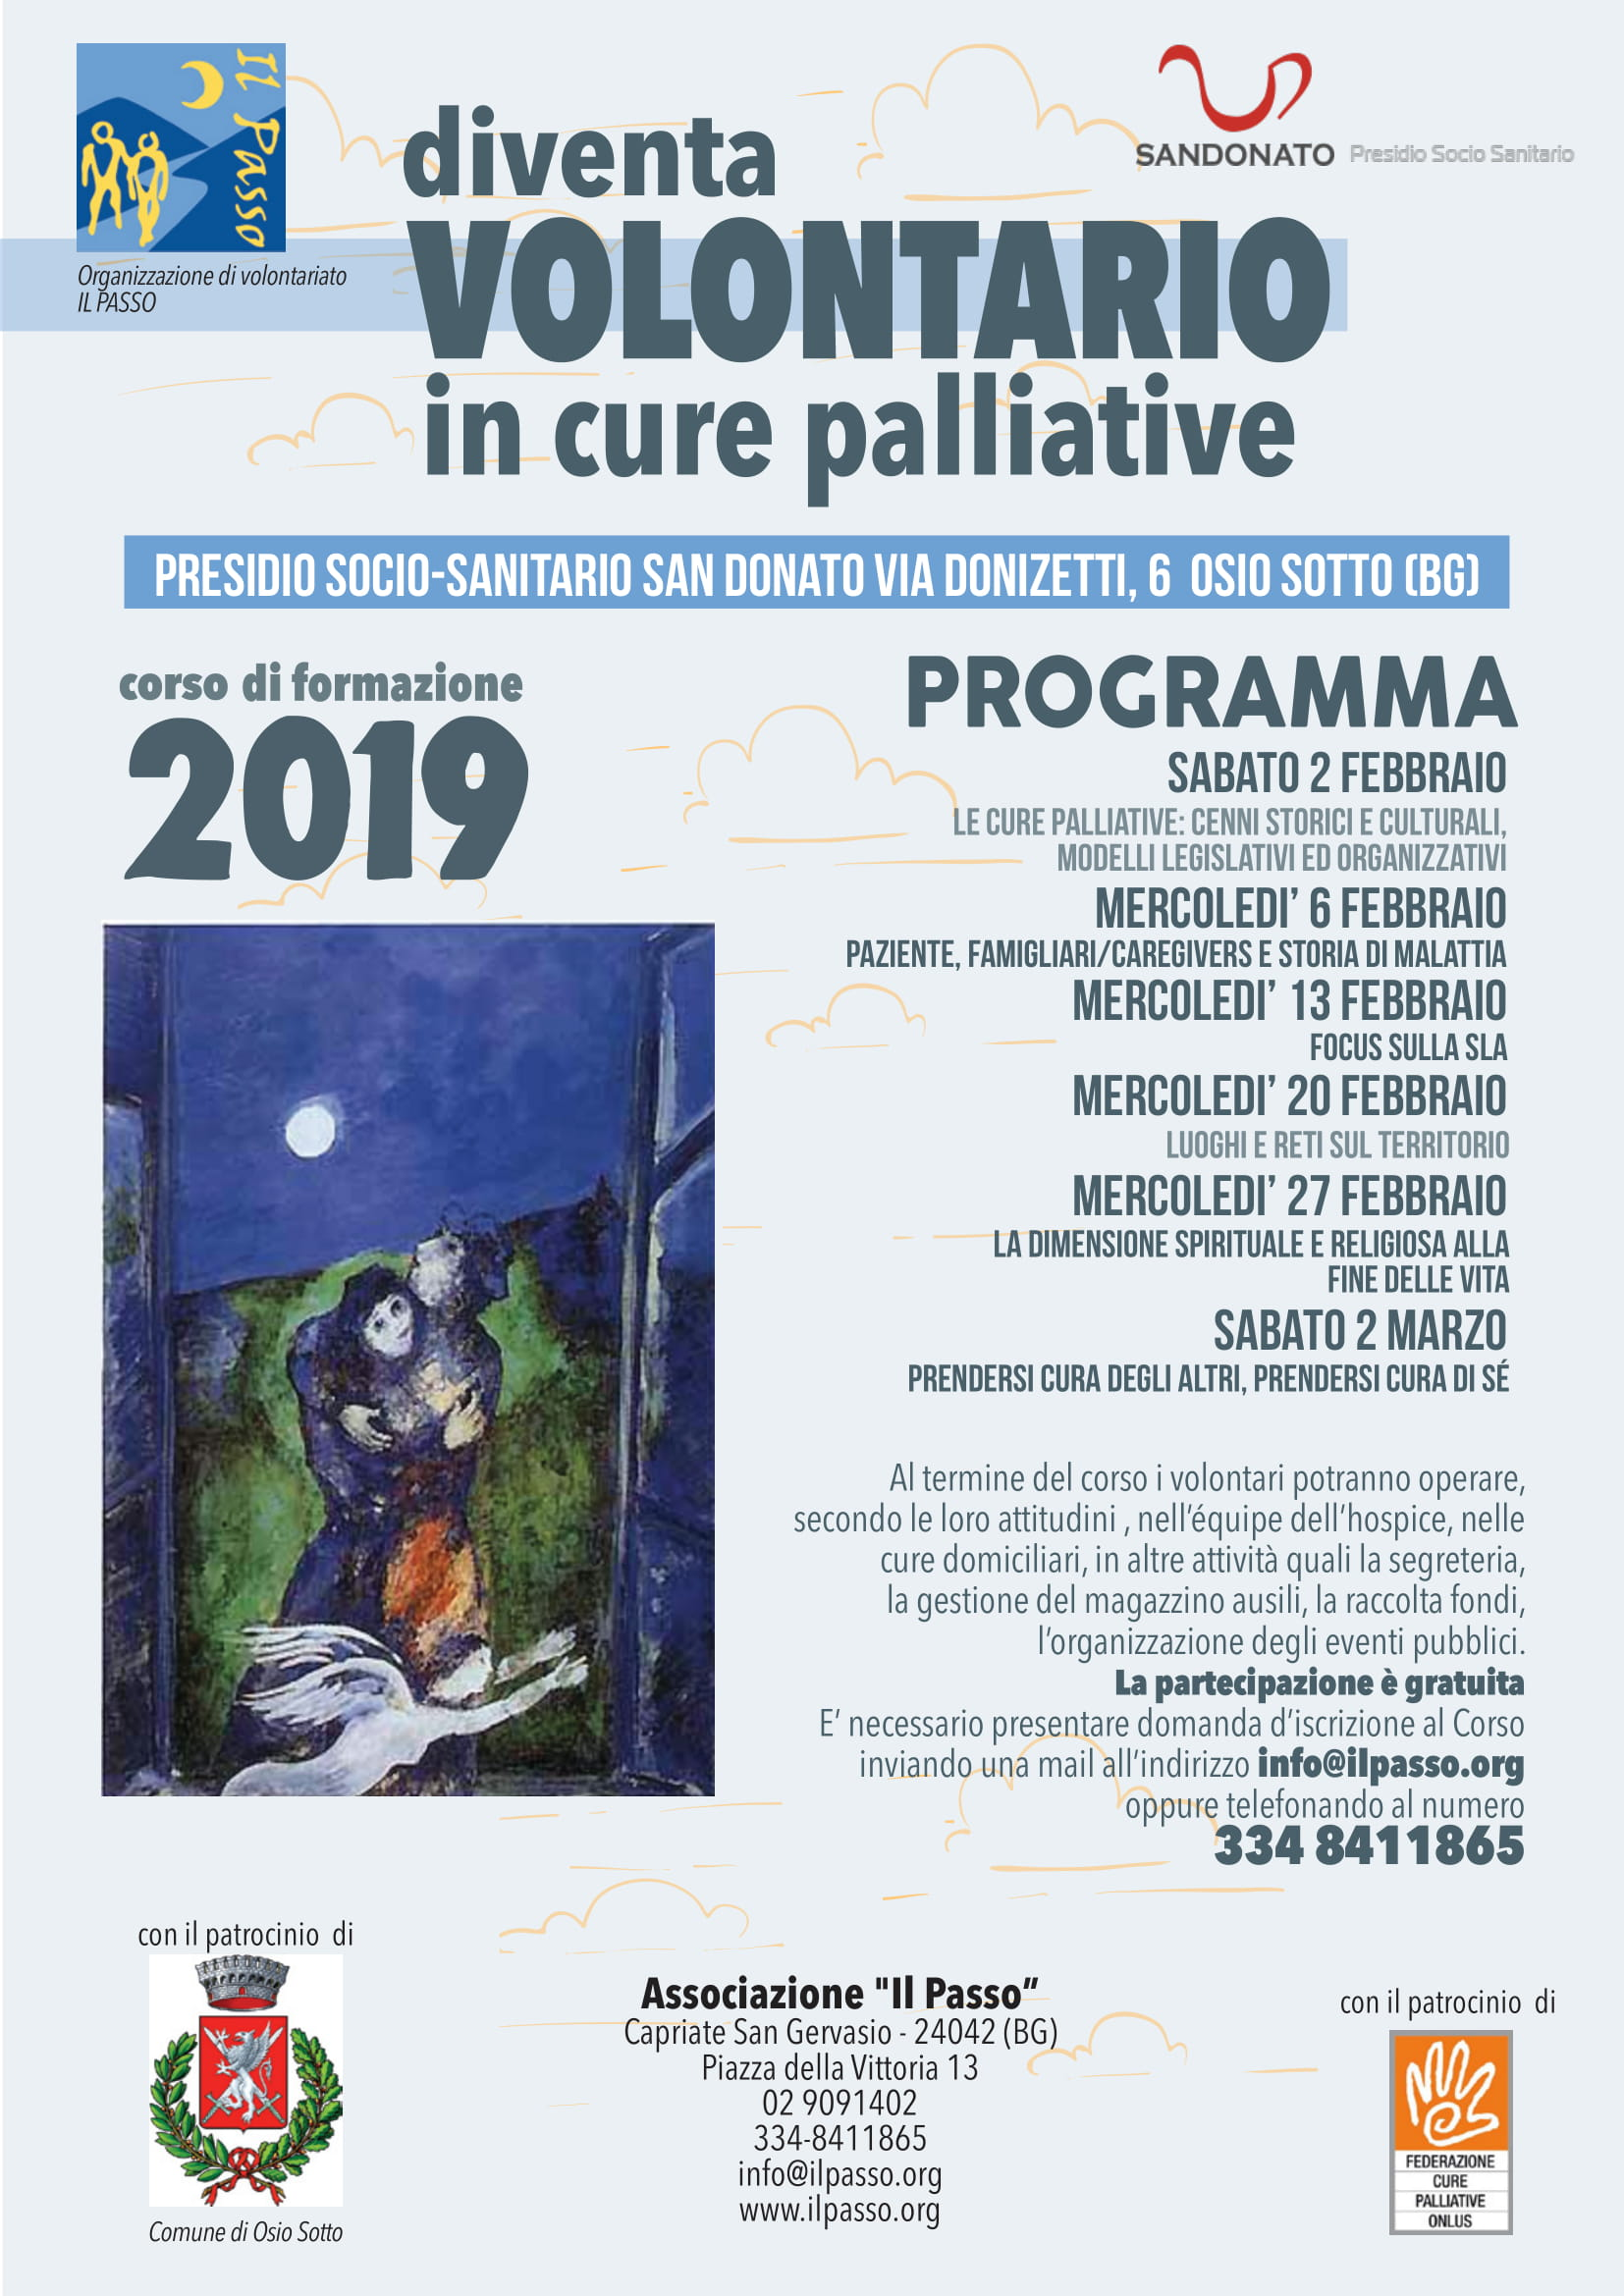 Diventa volontario in cure palliative